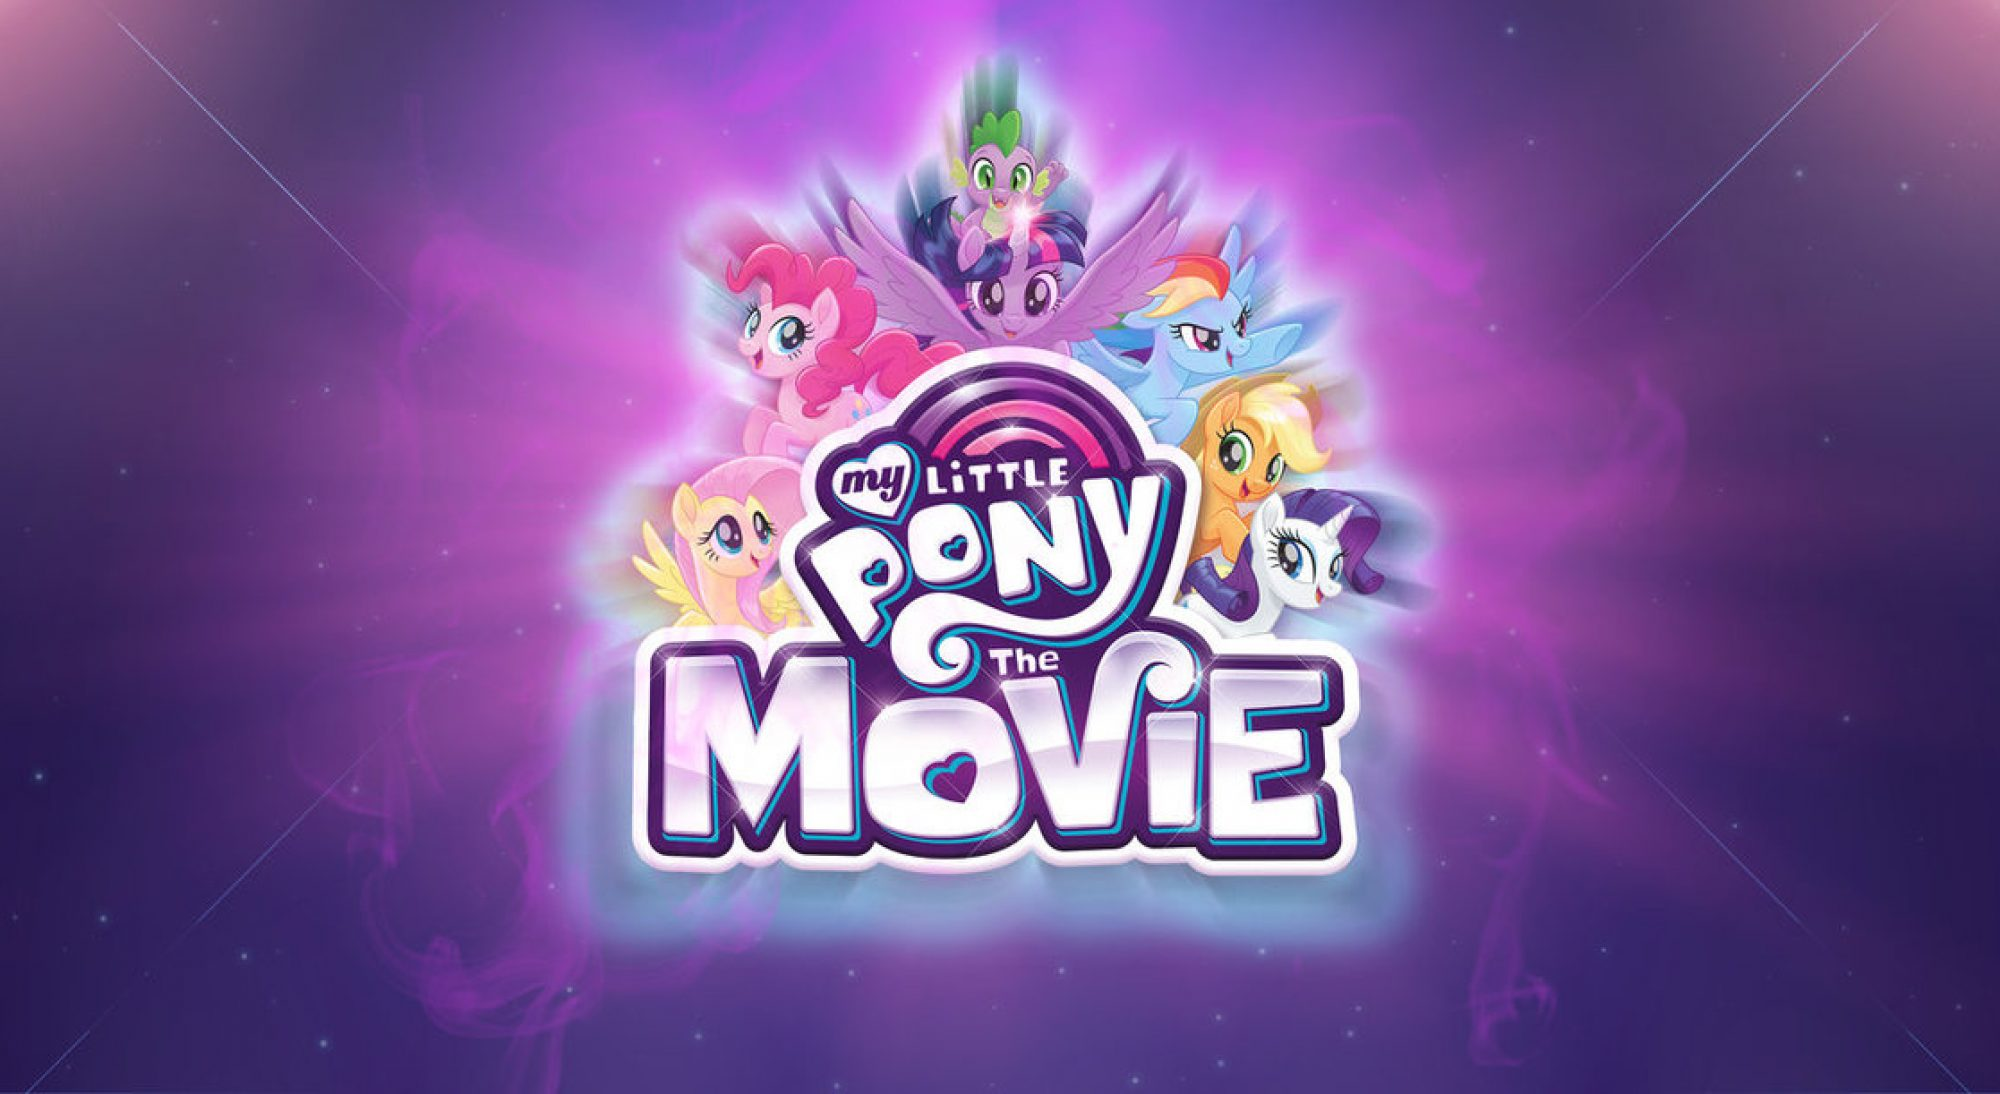 New My Little Pony The Movie Adventures Wall Decal Sticker